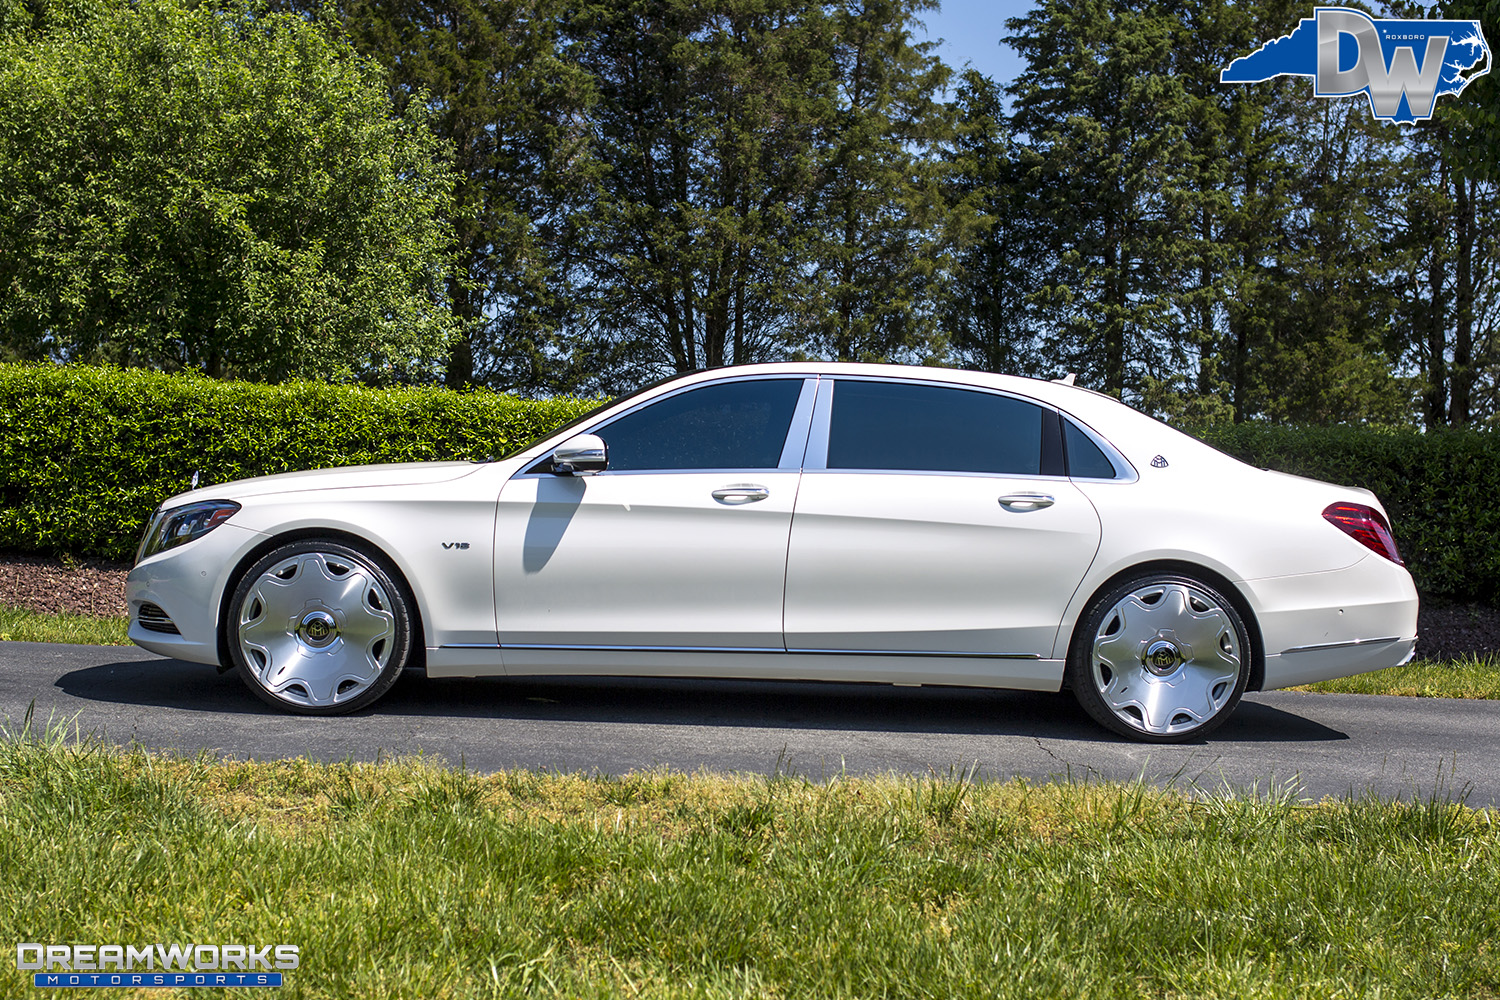 Maybach-S600-Chris-Wilcox-Dreamworks-Motorsports-9.jpg